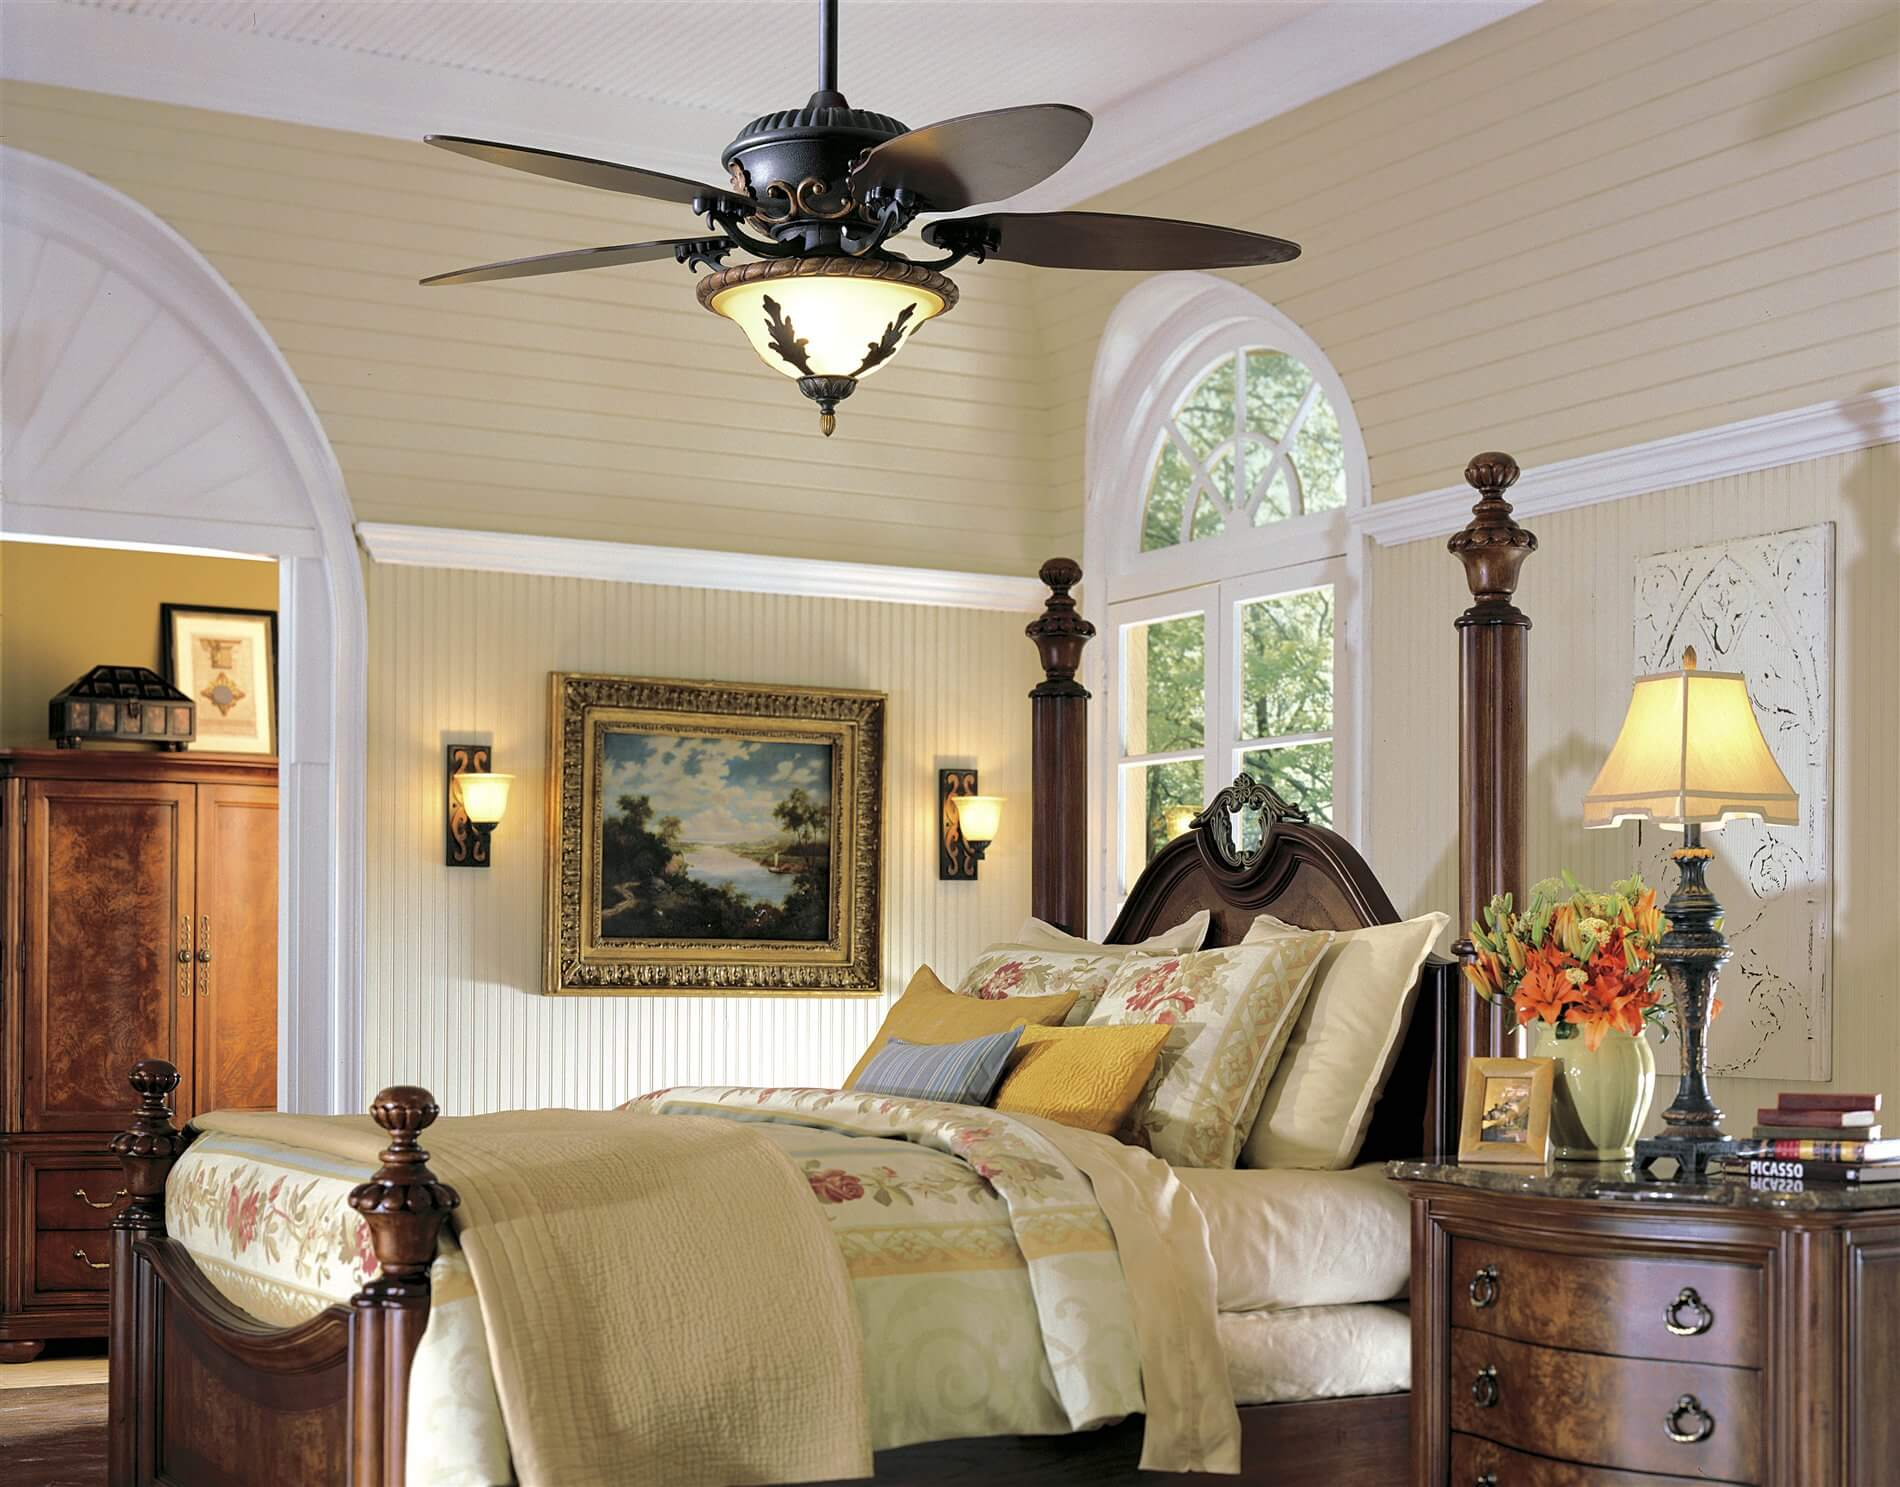 Beautiful designed bedroom with metallic ceiling fan, a large wooden wardrobe in the background, beige wall theme, and a hardwood bed frame and cabinet with night lamp on it.